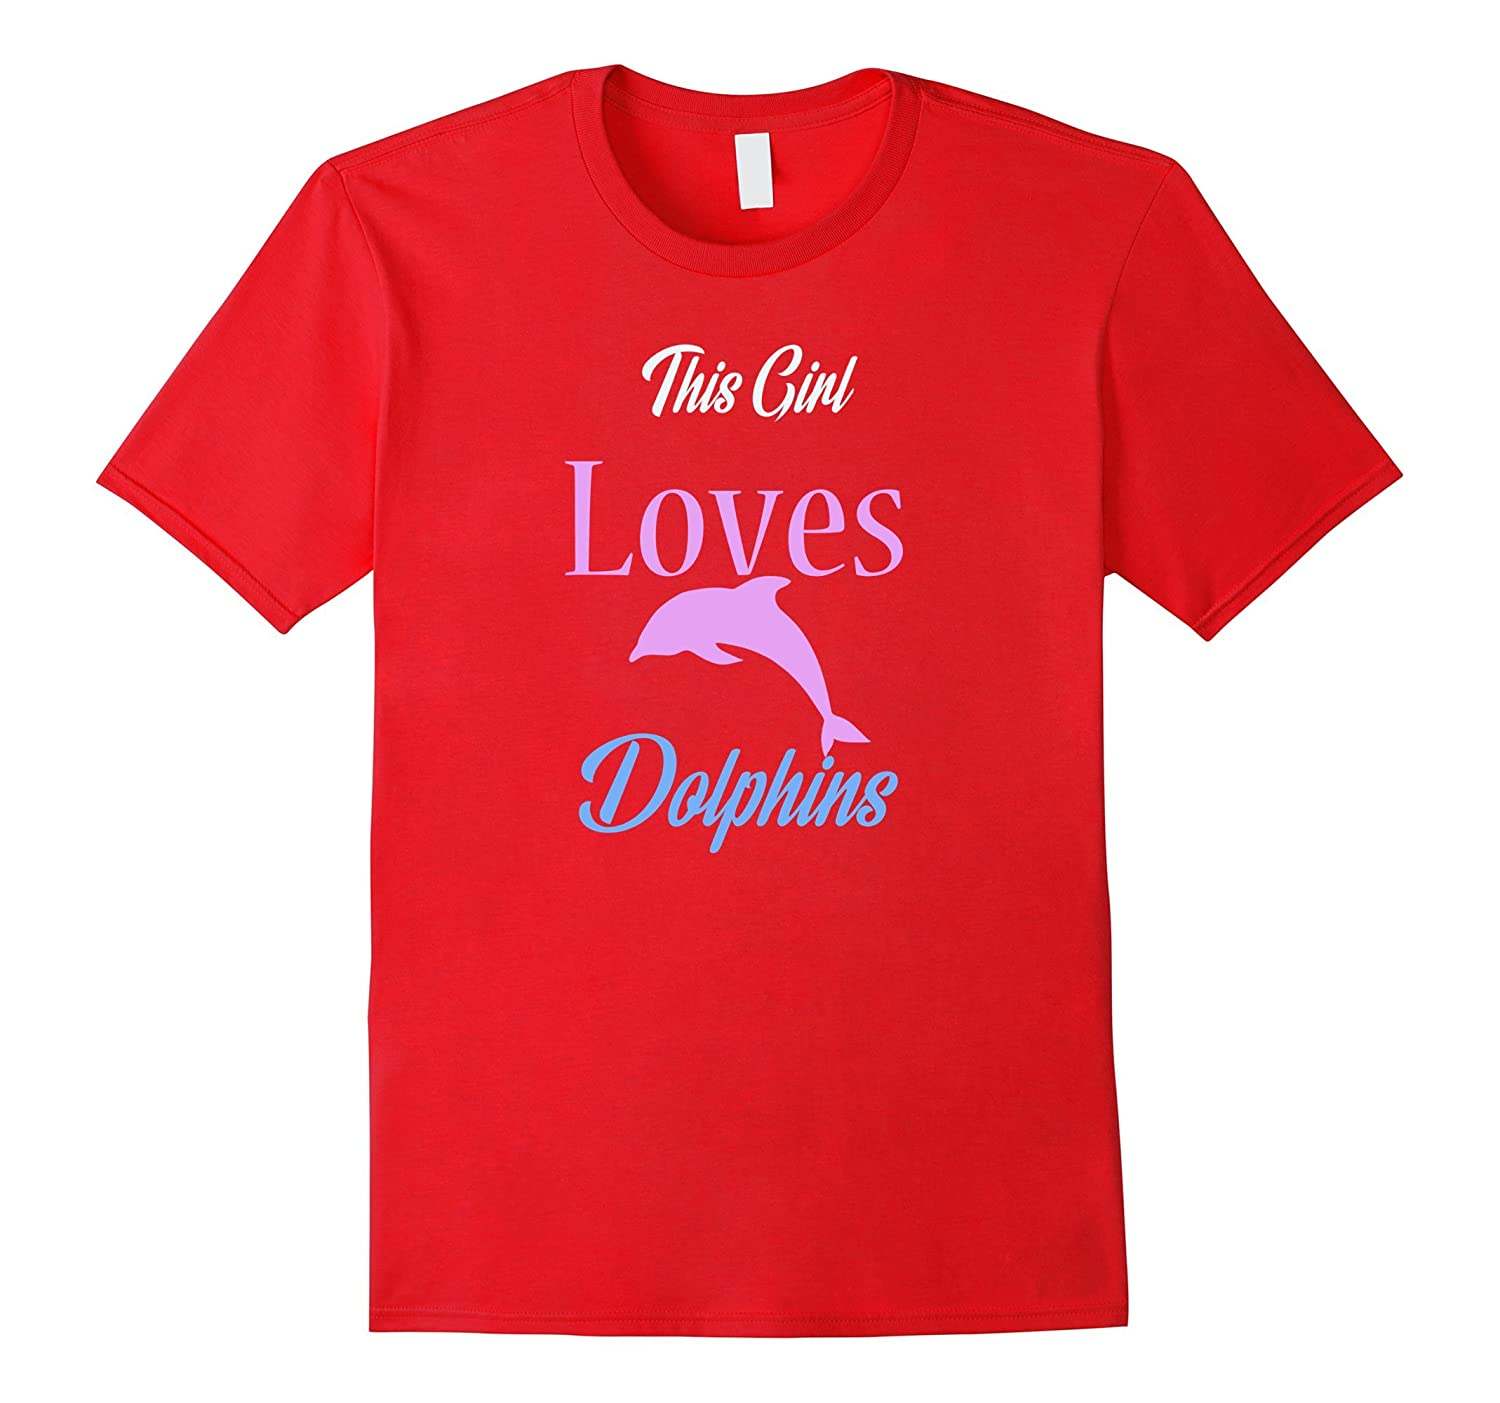 Cute this girl loves dolphins women t shirt dolphins t shirt-Yolotee